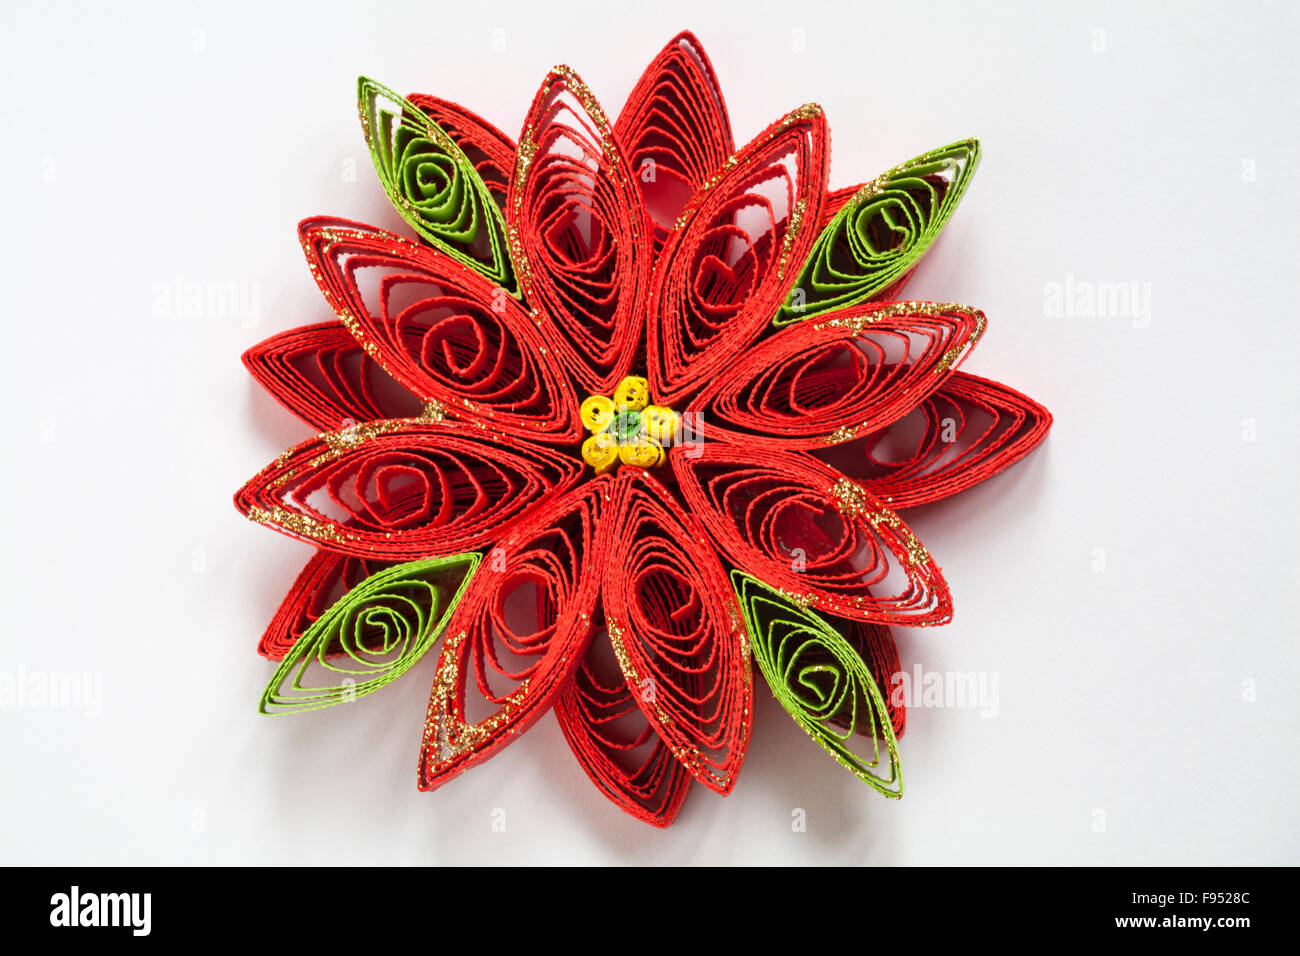 Quilling Card Paper Flower Stock Photos Quilling Card Paper Flower